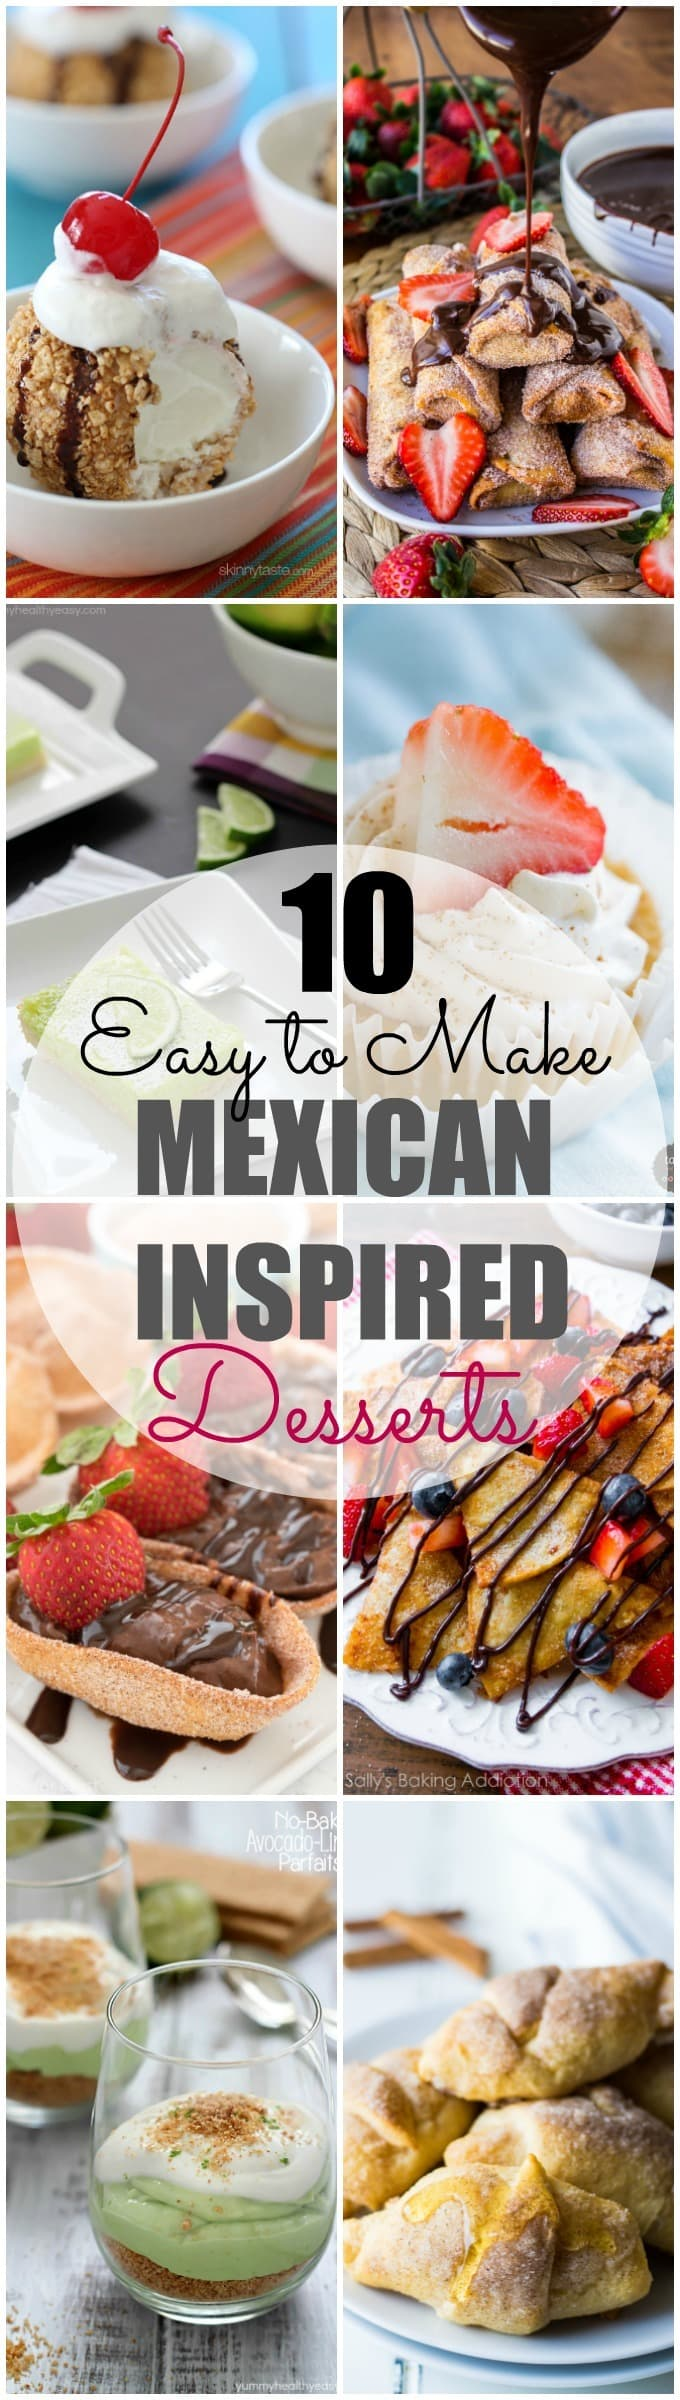 These EASY to make Mexican Inspired Desserts are sure to be a hit! Perfect for an everyday dessert for the family or even possibly a cinco de mayo get together?! Whatever the occasion these simple recipes are so creative, they are sure to knock everyone's socks off!